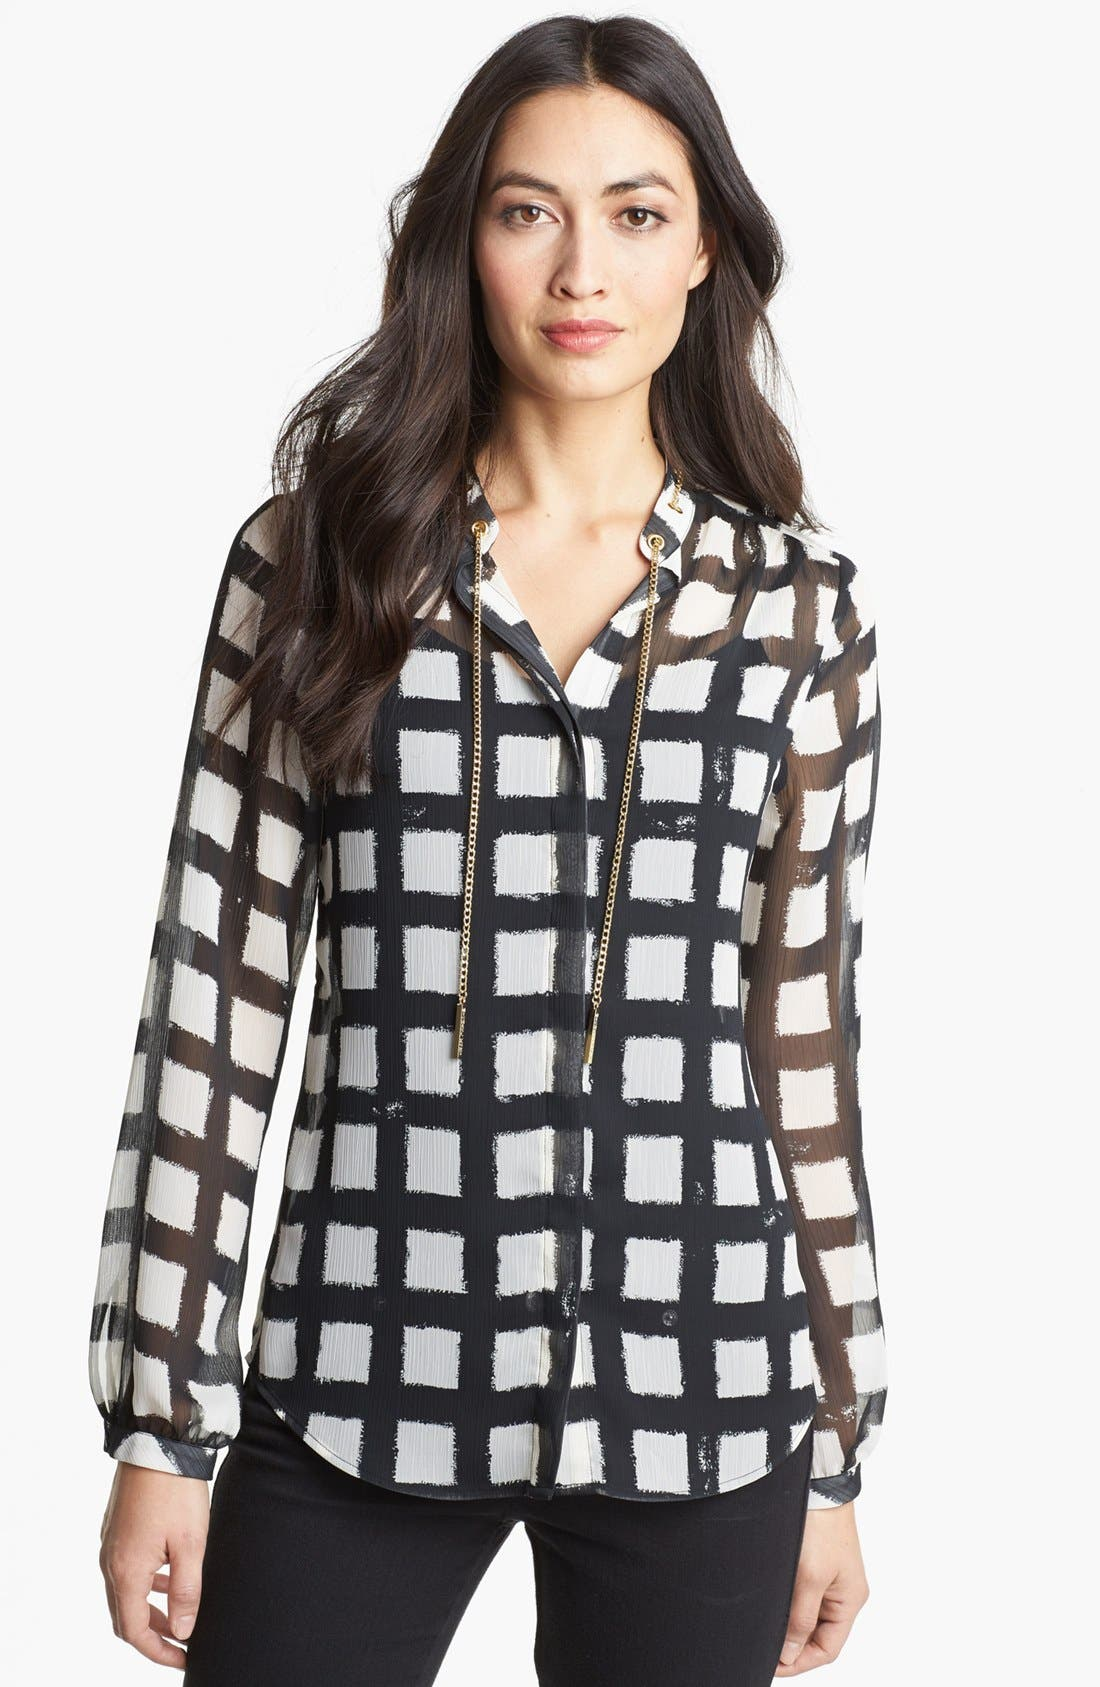 Main Image - MICHAEL Michael Kors Chain Trim Check Print Blouse (Regular & Petite)